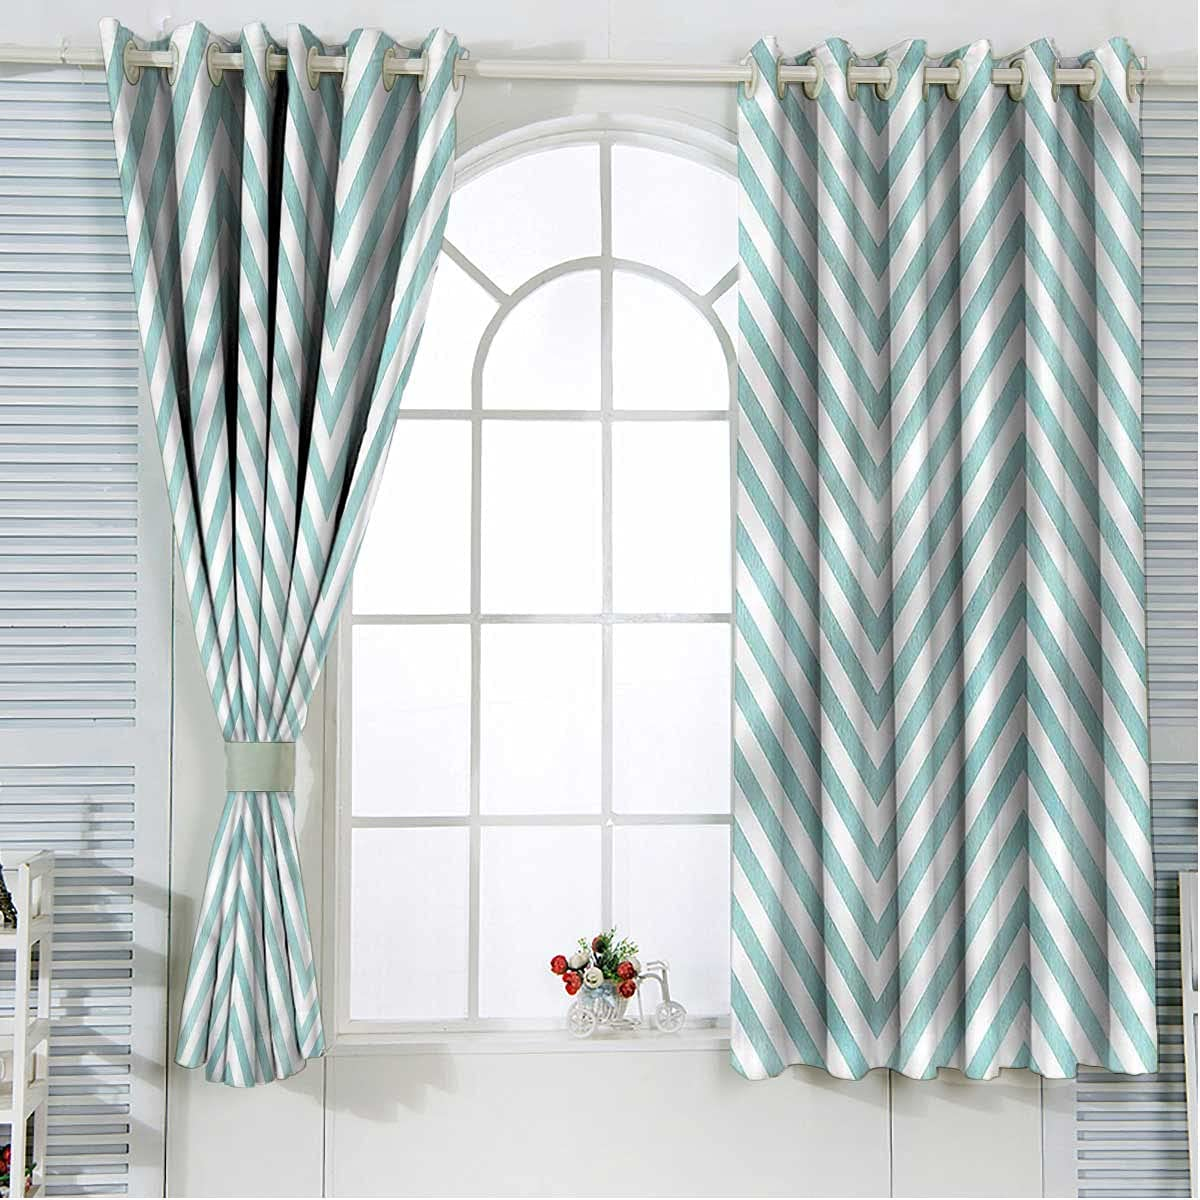 Chevron Blackout Curtains with Tiebacks Chicago Mall Length 96 Inch Atlanta Mall Line Bent